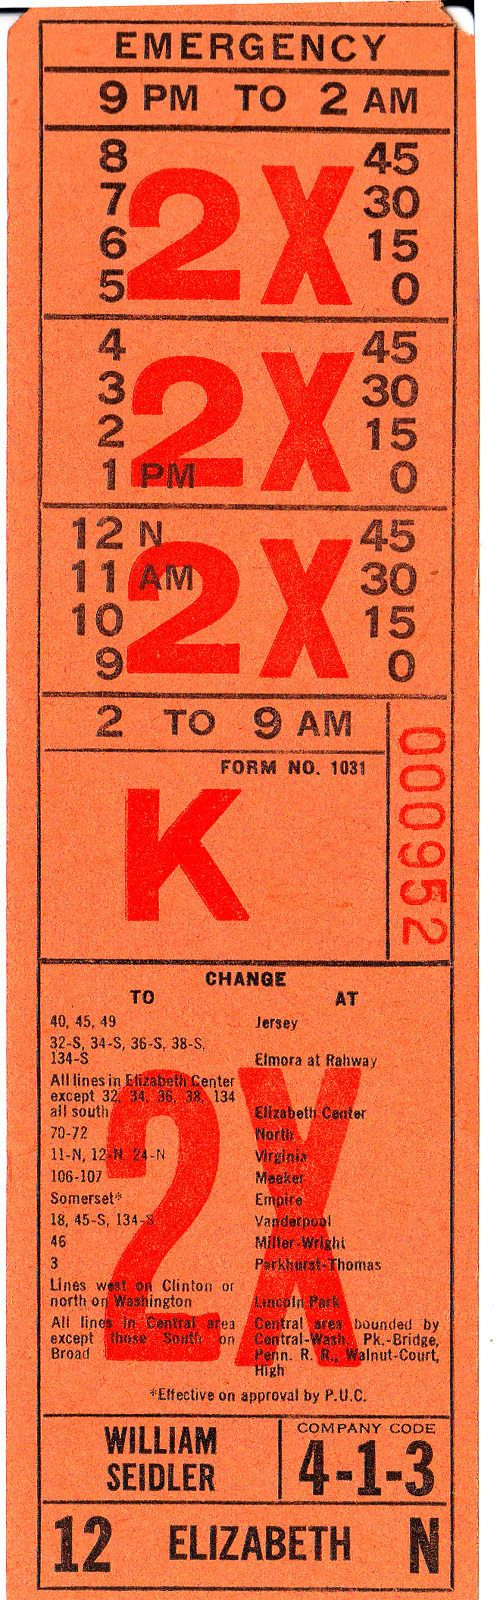 Front of bus transfer of William Seidler, one of the independent carriers exchanging transfers with Public Service Coordinated Transport of New Jersey (1960s)